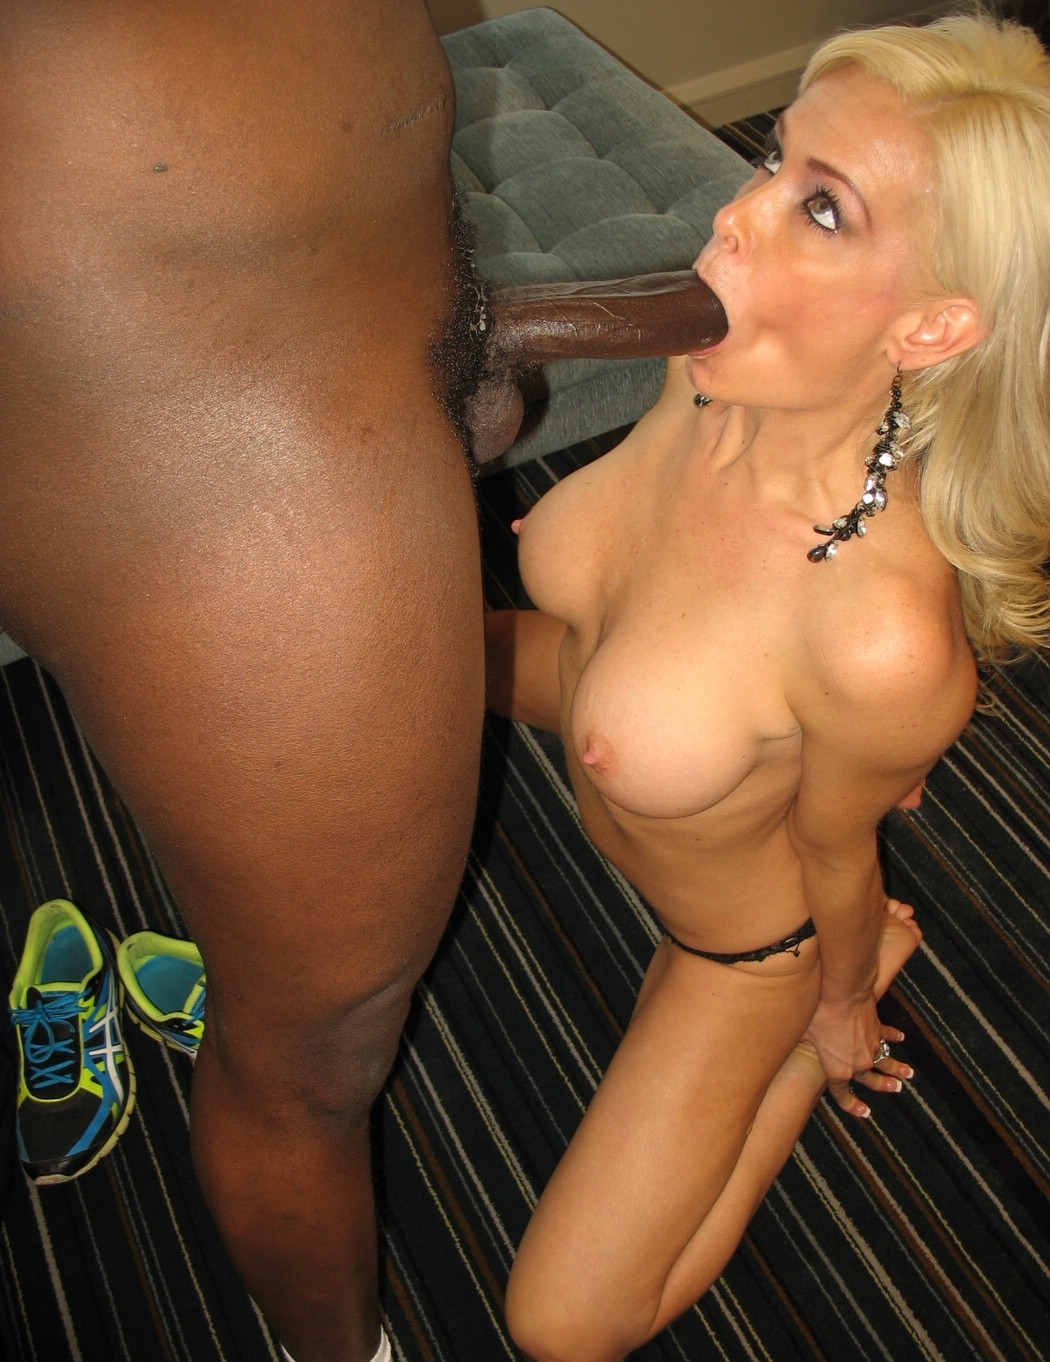 Chubby white naked womansex with black guy